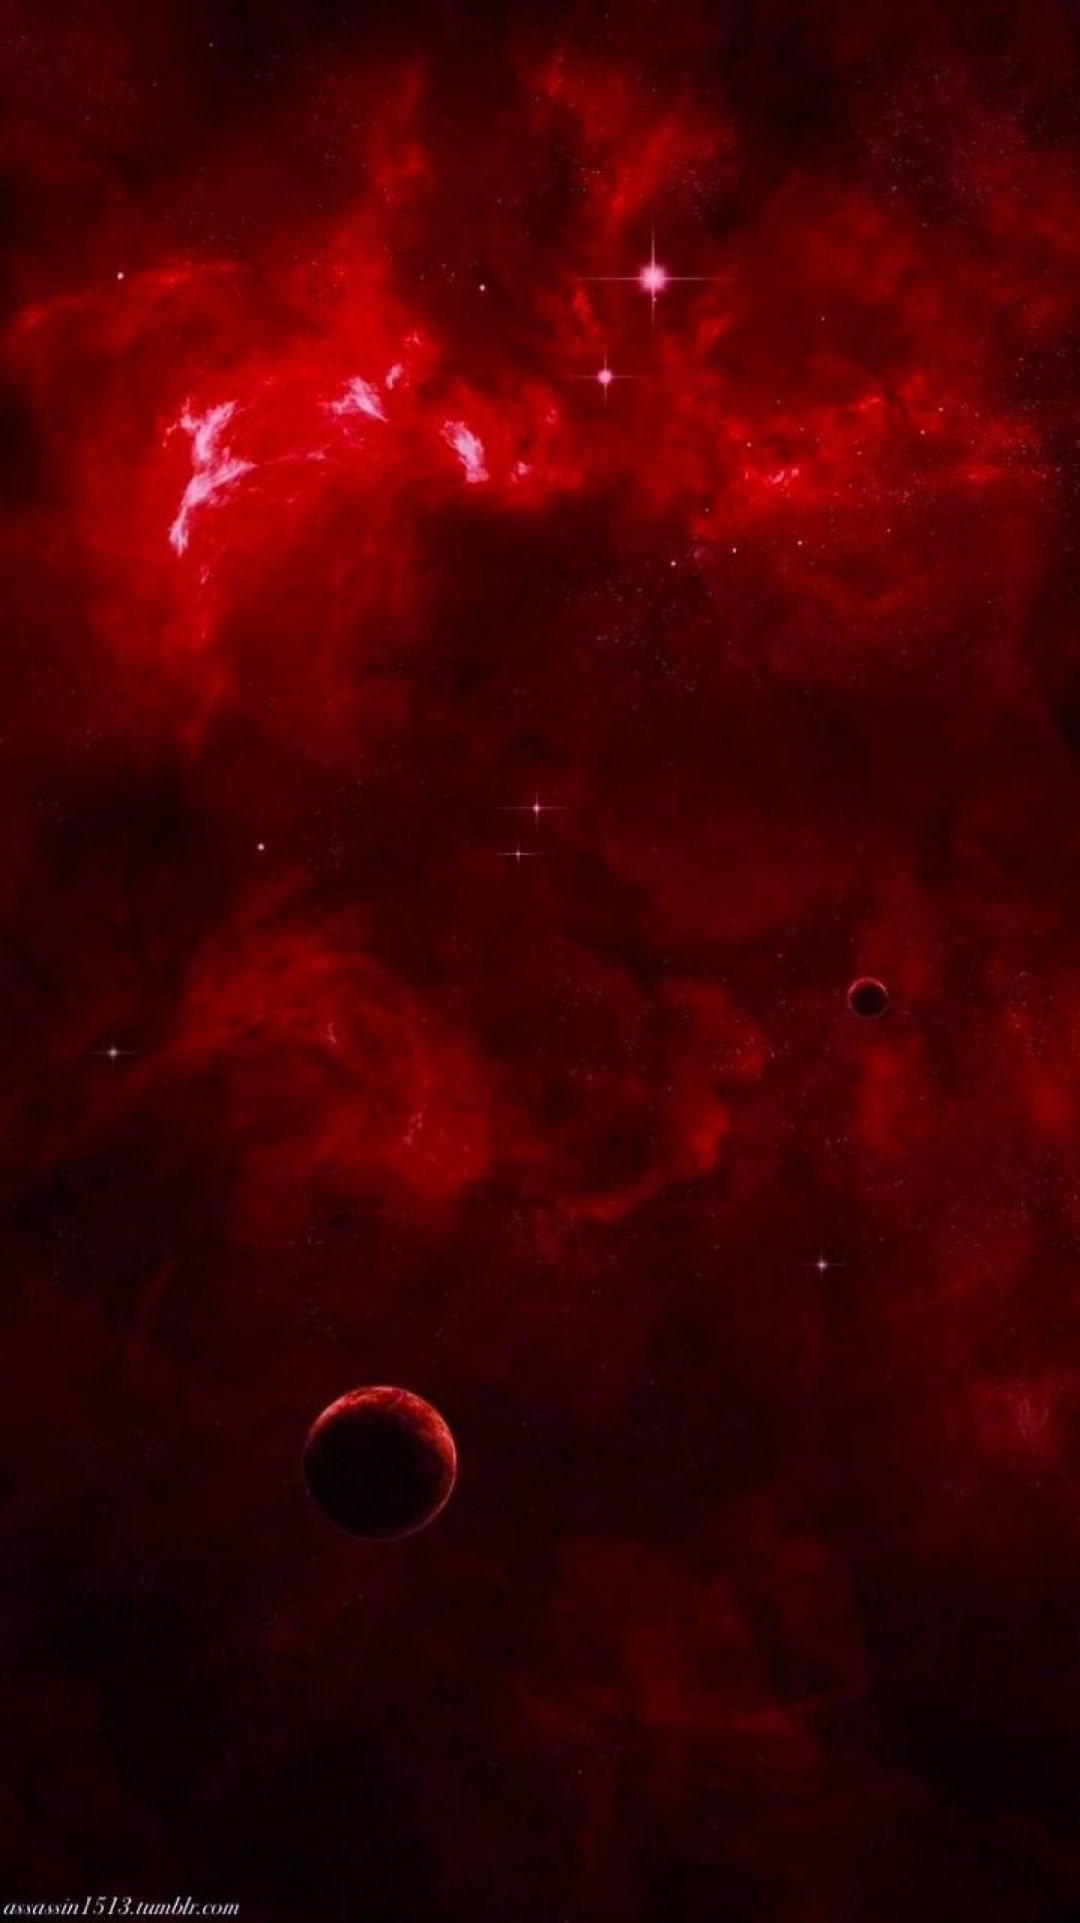 Red Aesthetic Iphone Android Iphone Desktop Hd Backgrounds Wallpapers 1080p 4k 102277 Hdwallpa Nebula Wallpaper Red Colour Wallpaper Red Wallpaper